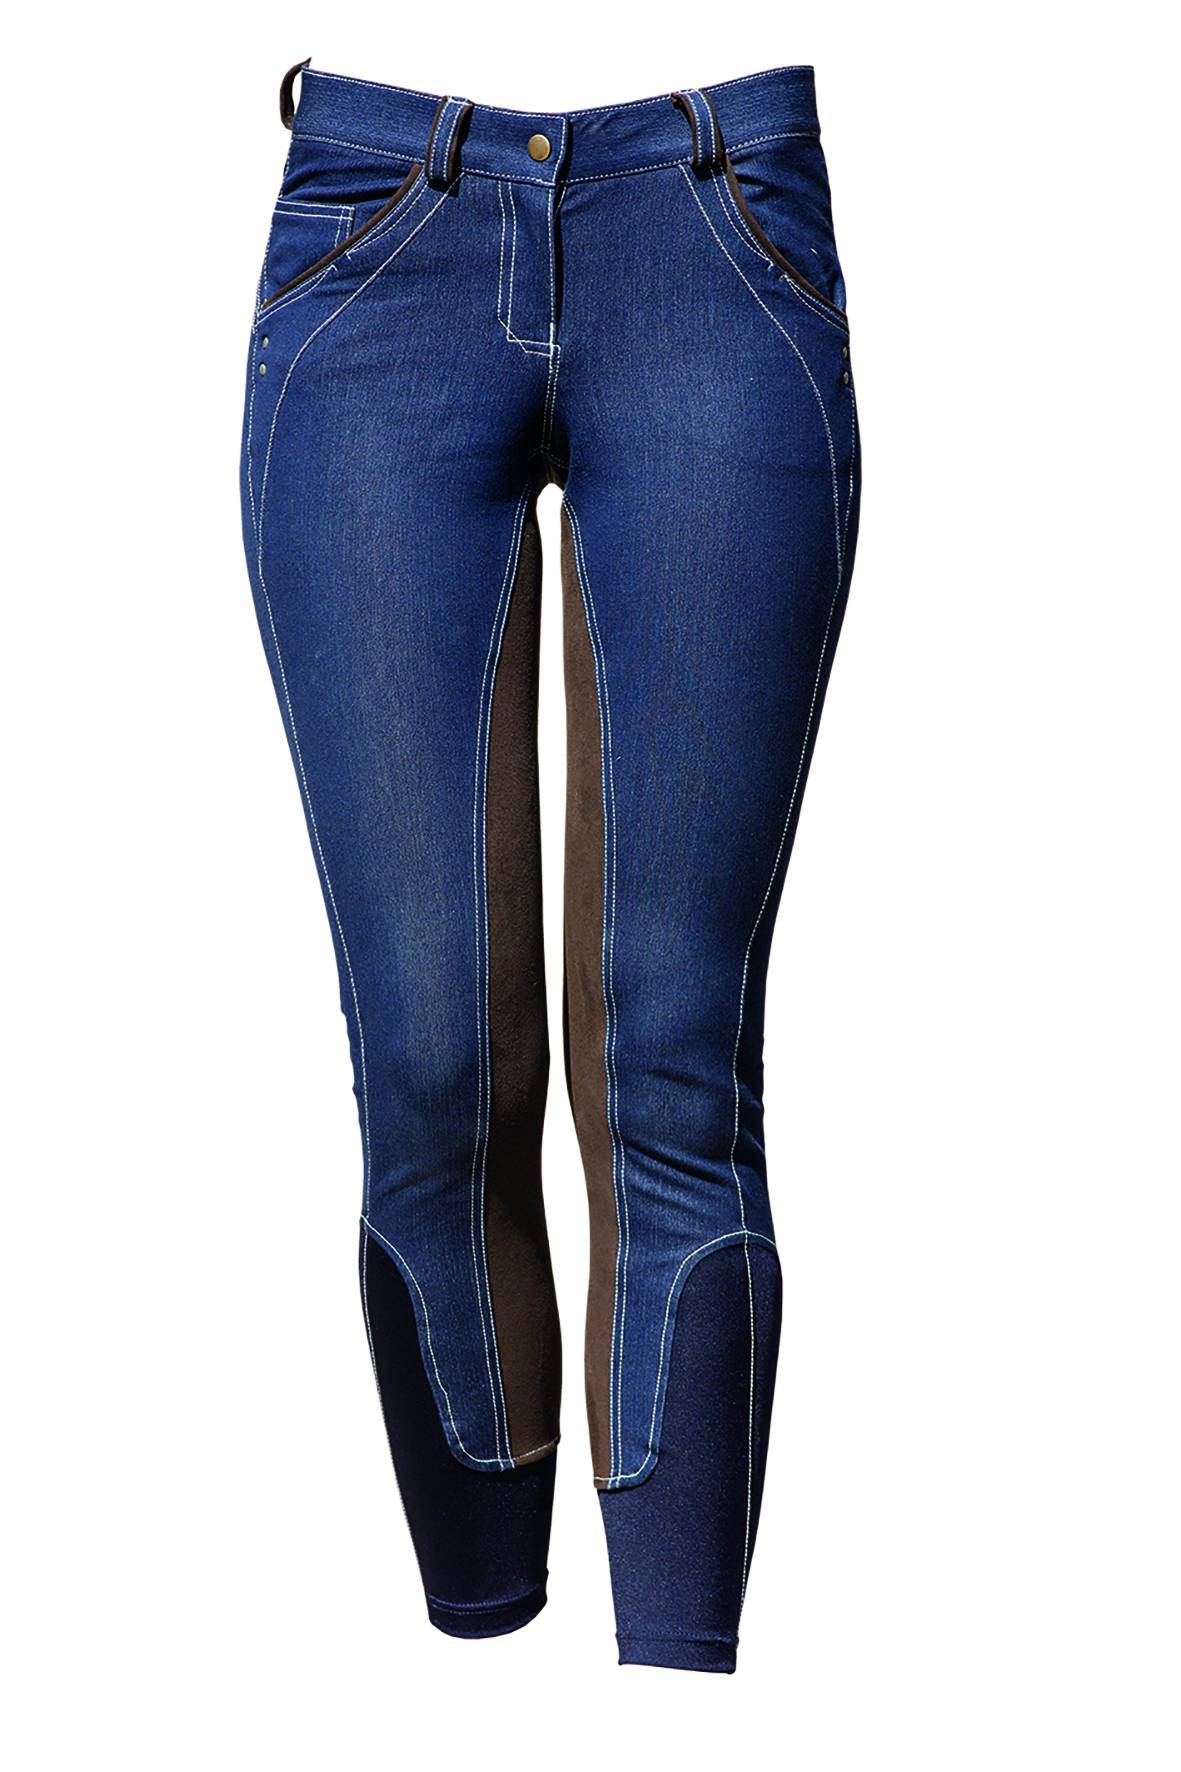 Horseware Ladies Self Seat Denim Breeches